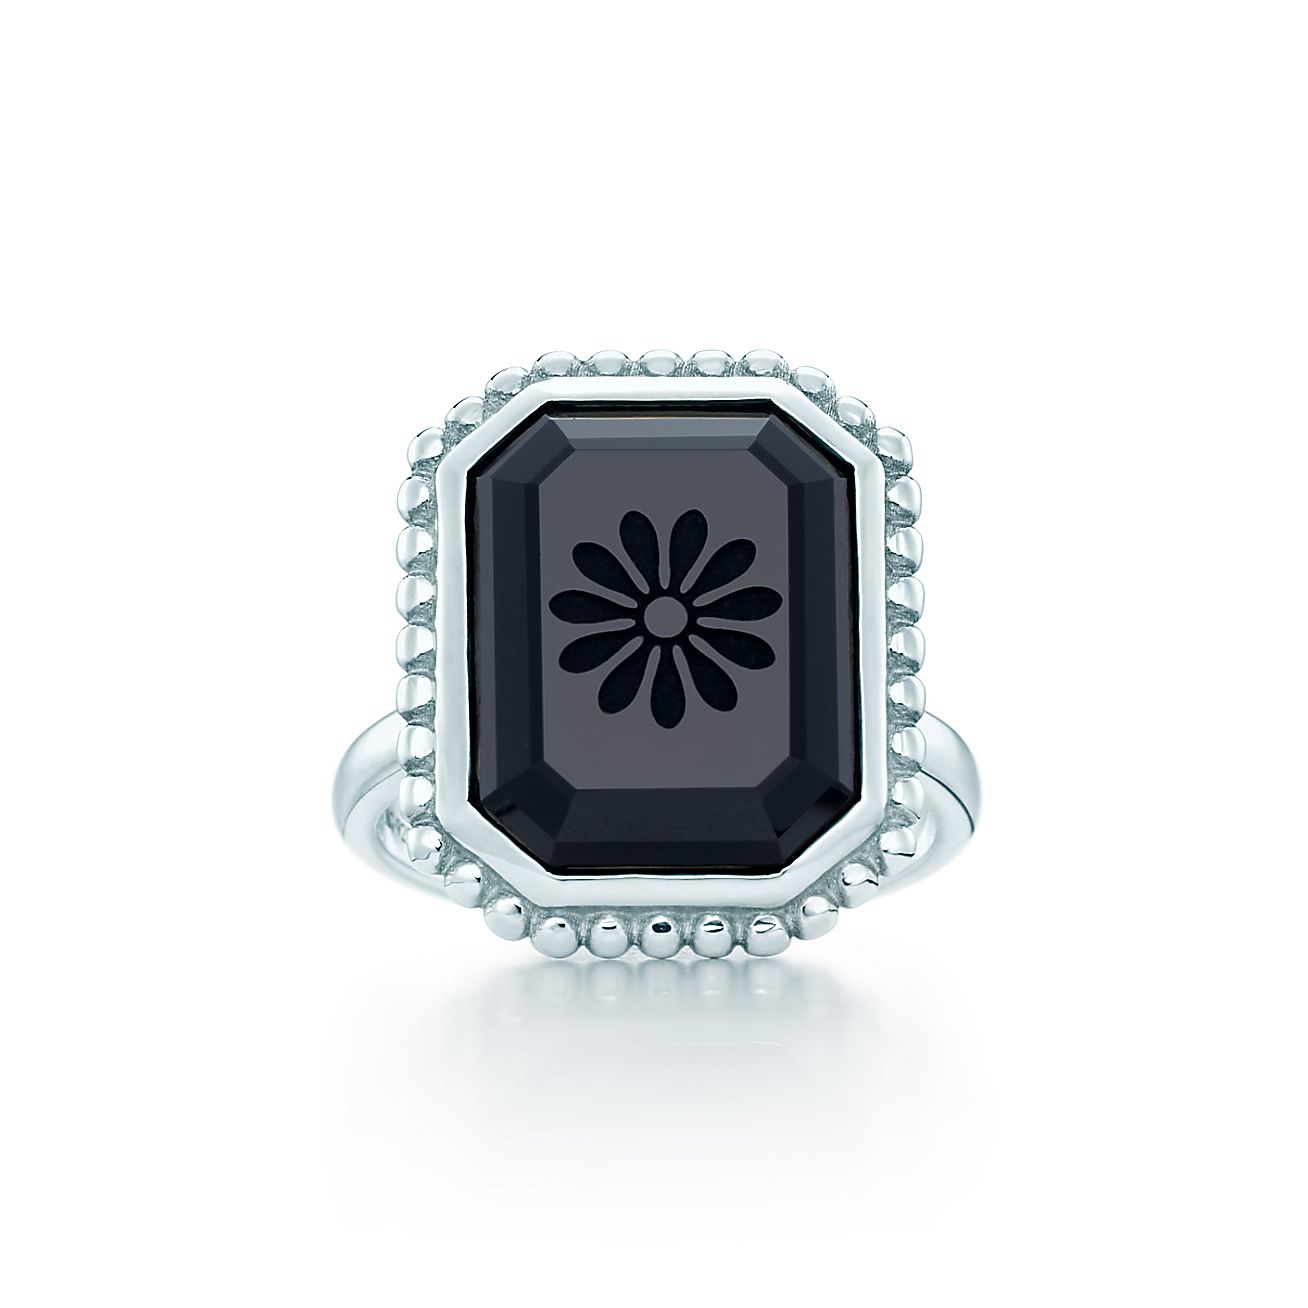 Ziegfeld Collection Daisy Ring In Sterling Silver And